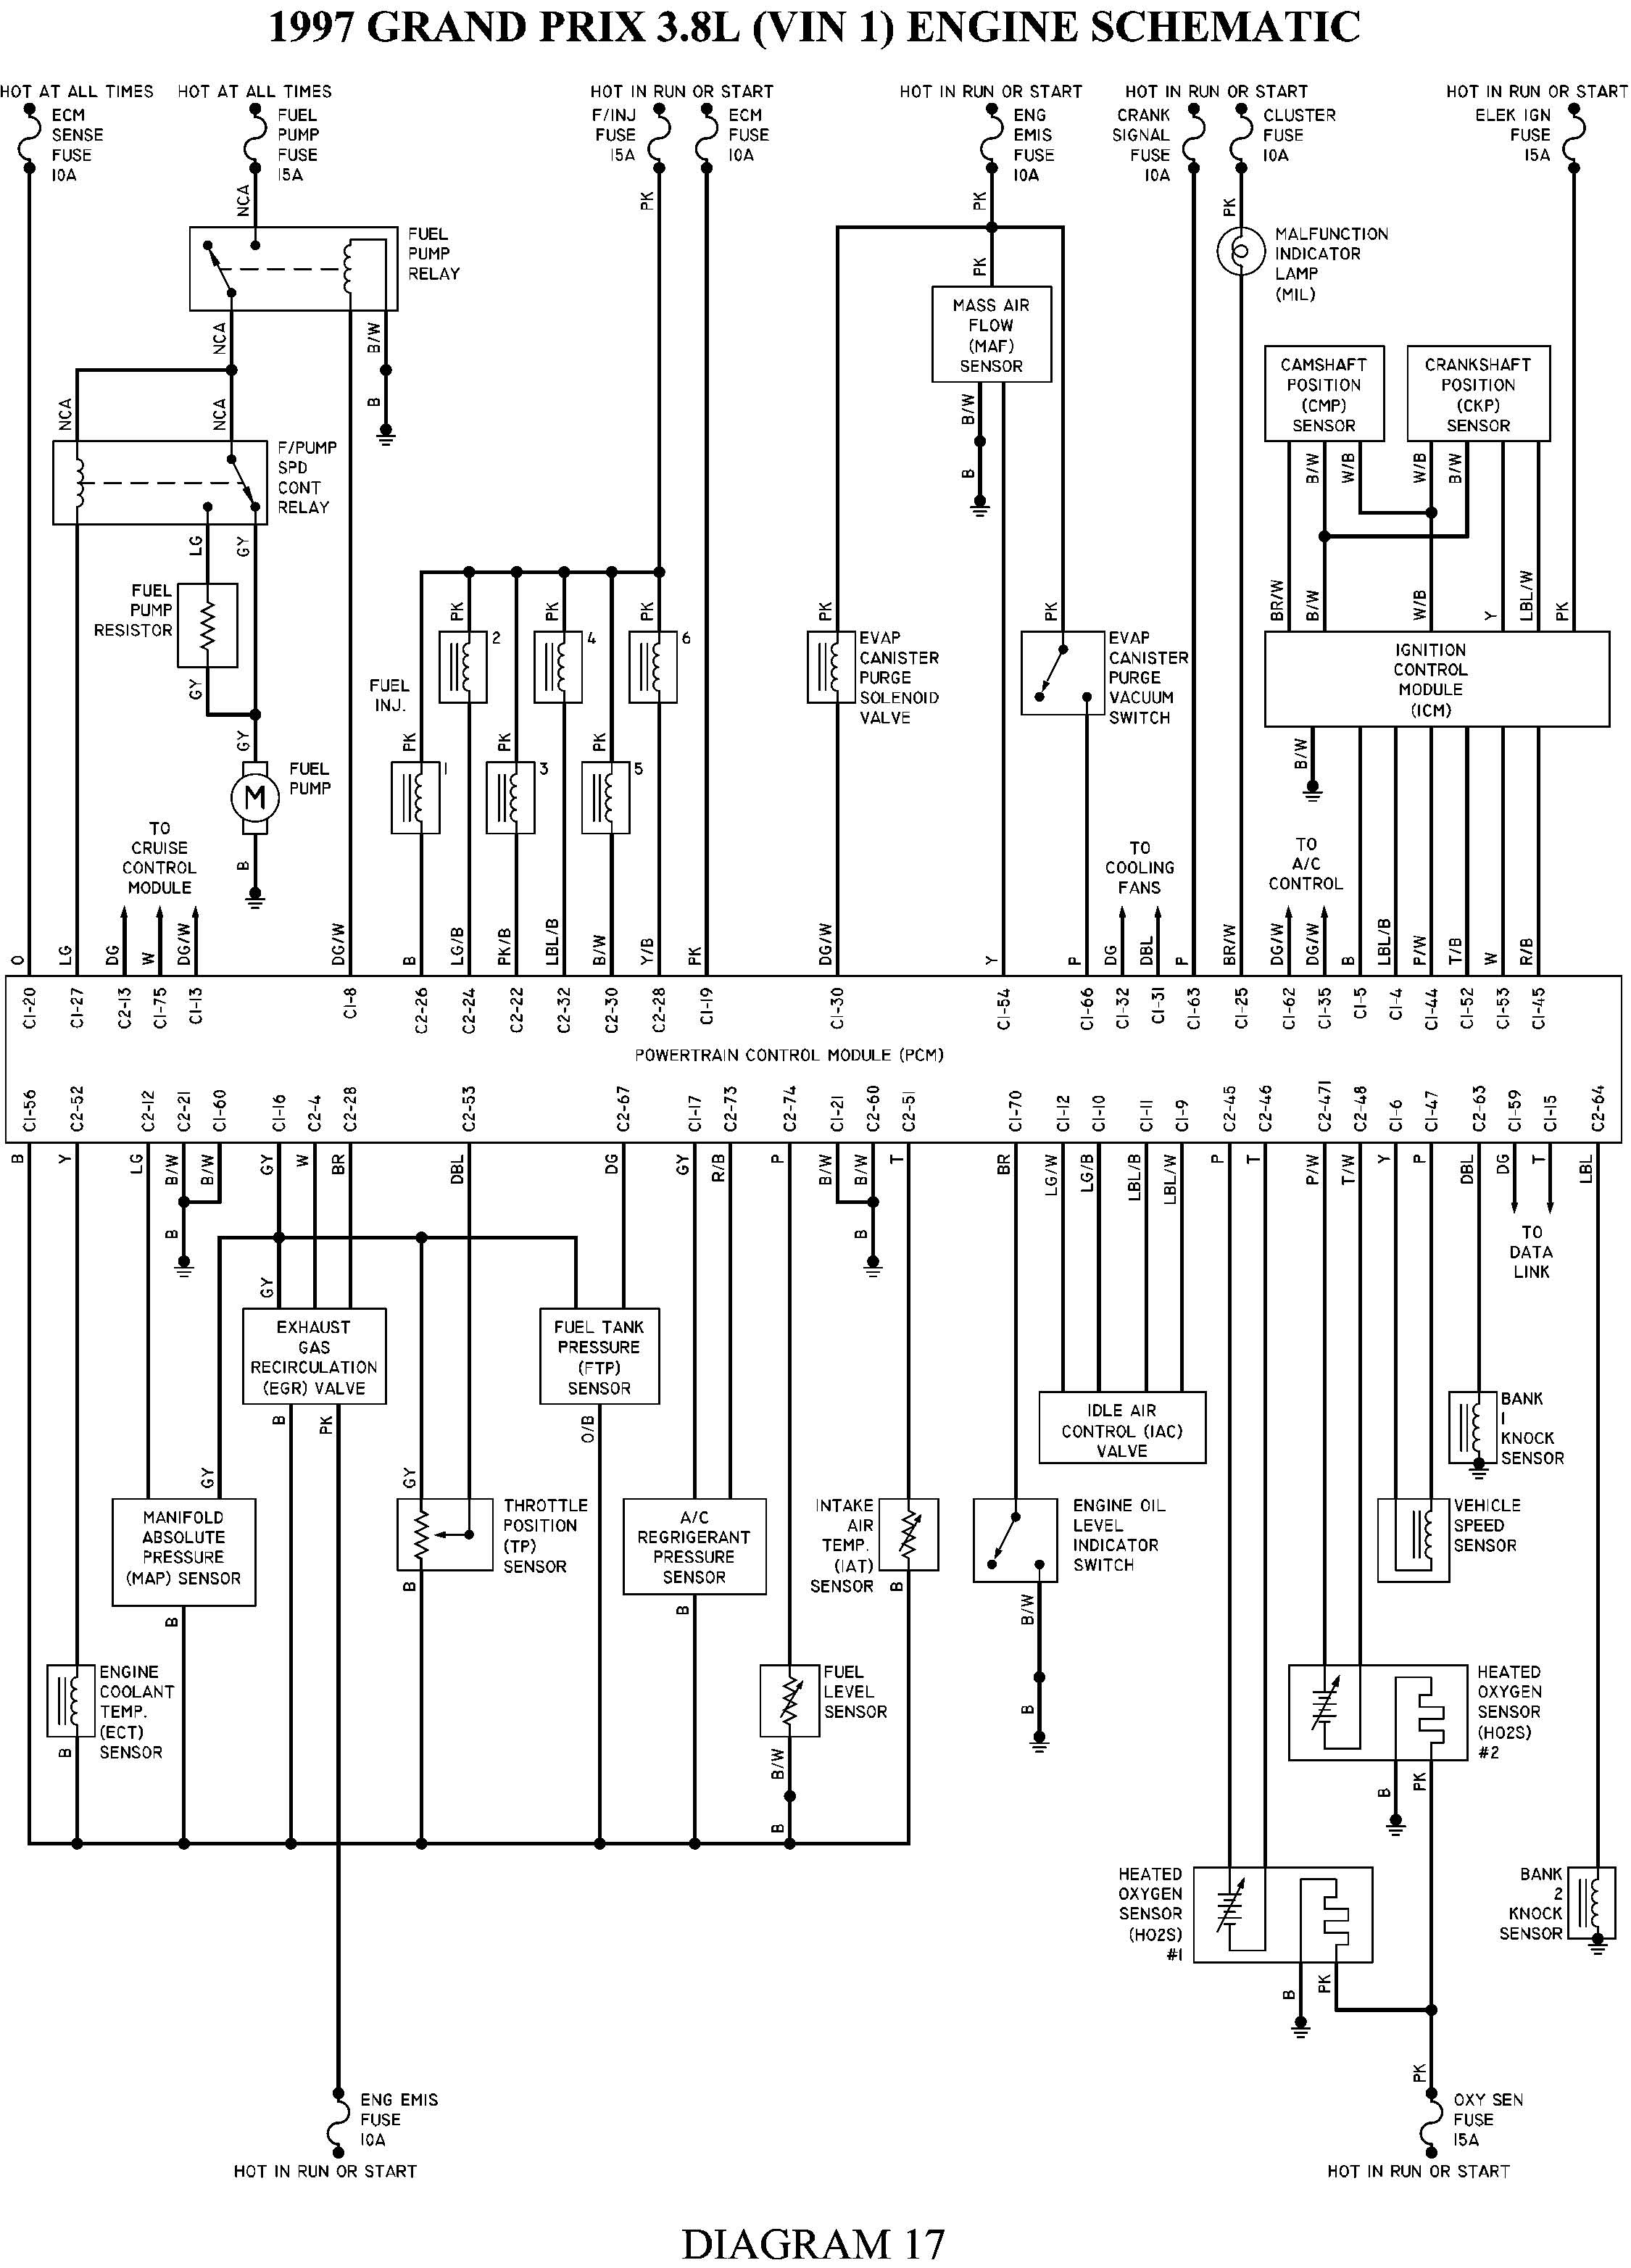 2004 Pontiac Grand Am Spark Plug Wiring Diagram